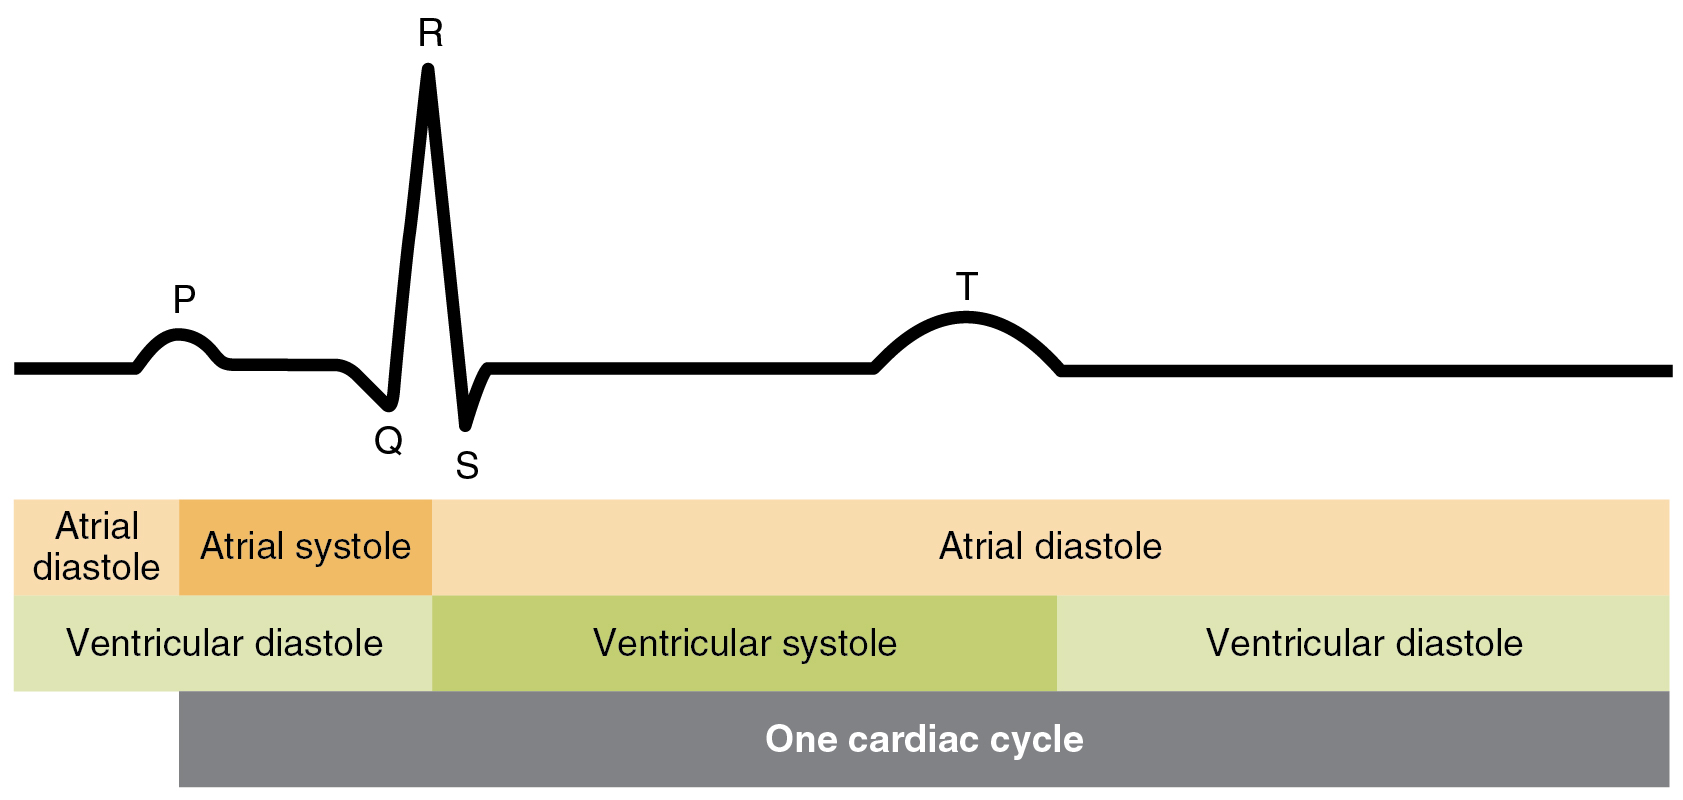 Ricerche Correlate A Ecg Simulator Circuit Diagram 193 Cardiac Cycle Anatomy And Physiology This Image Shows The Correlation Between Different Stages In Electrocardiogram